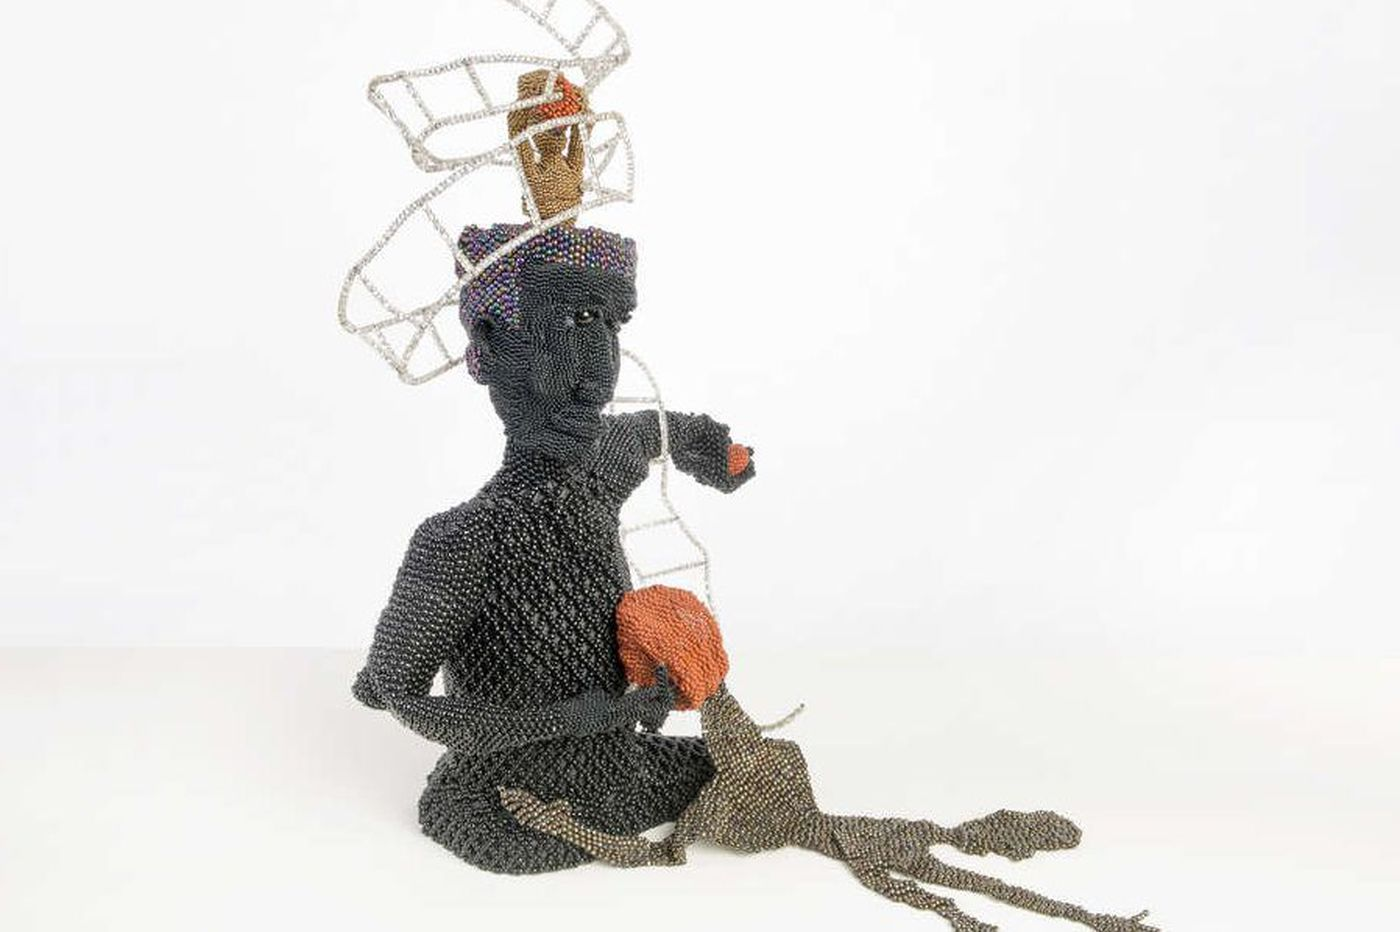 Joyce J. Scott at Grounds for Sculpture: A fierce vision in beads and glass